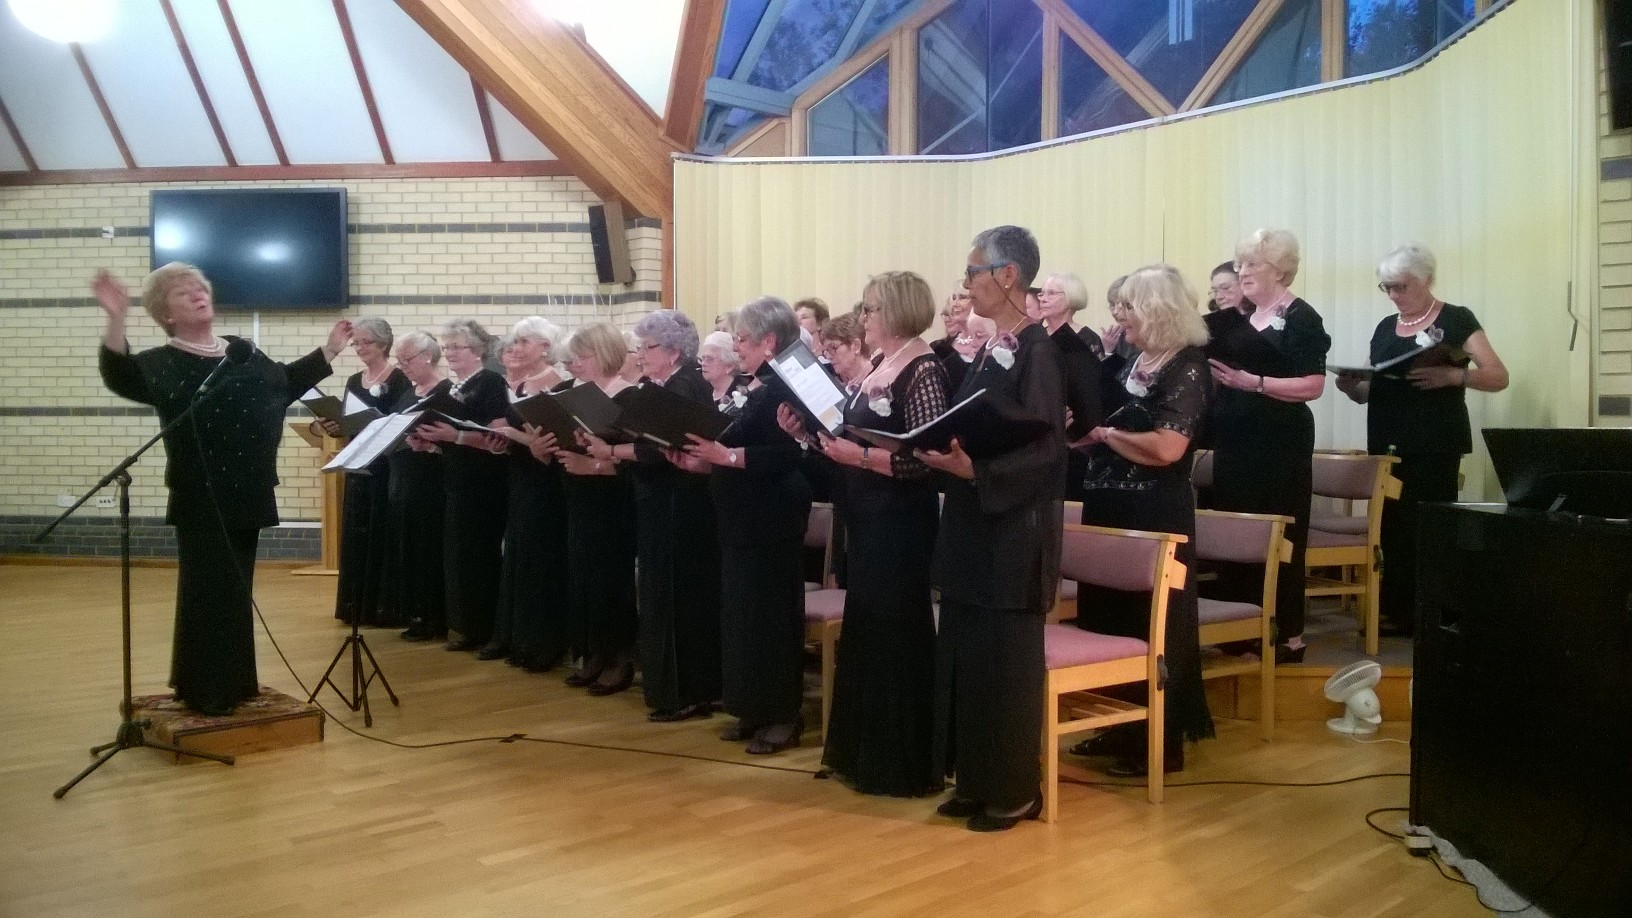 The Serenaders Ladies Choir charity concert